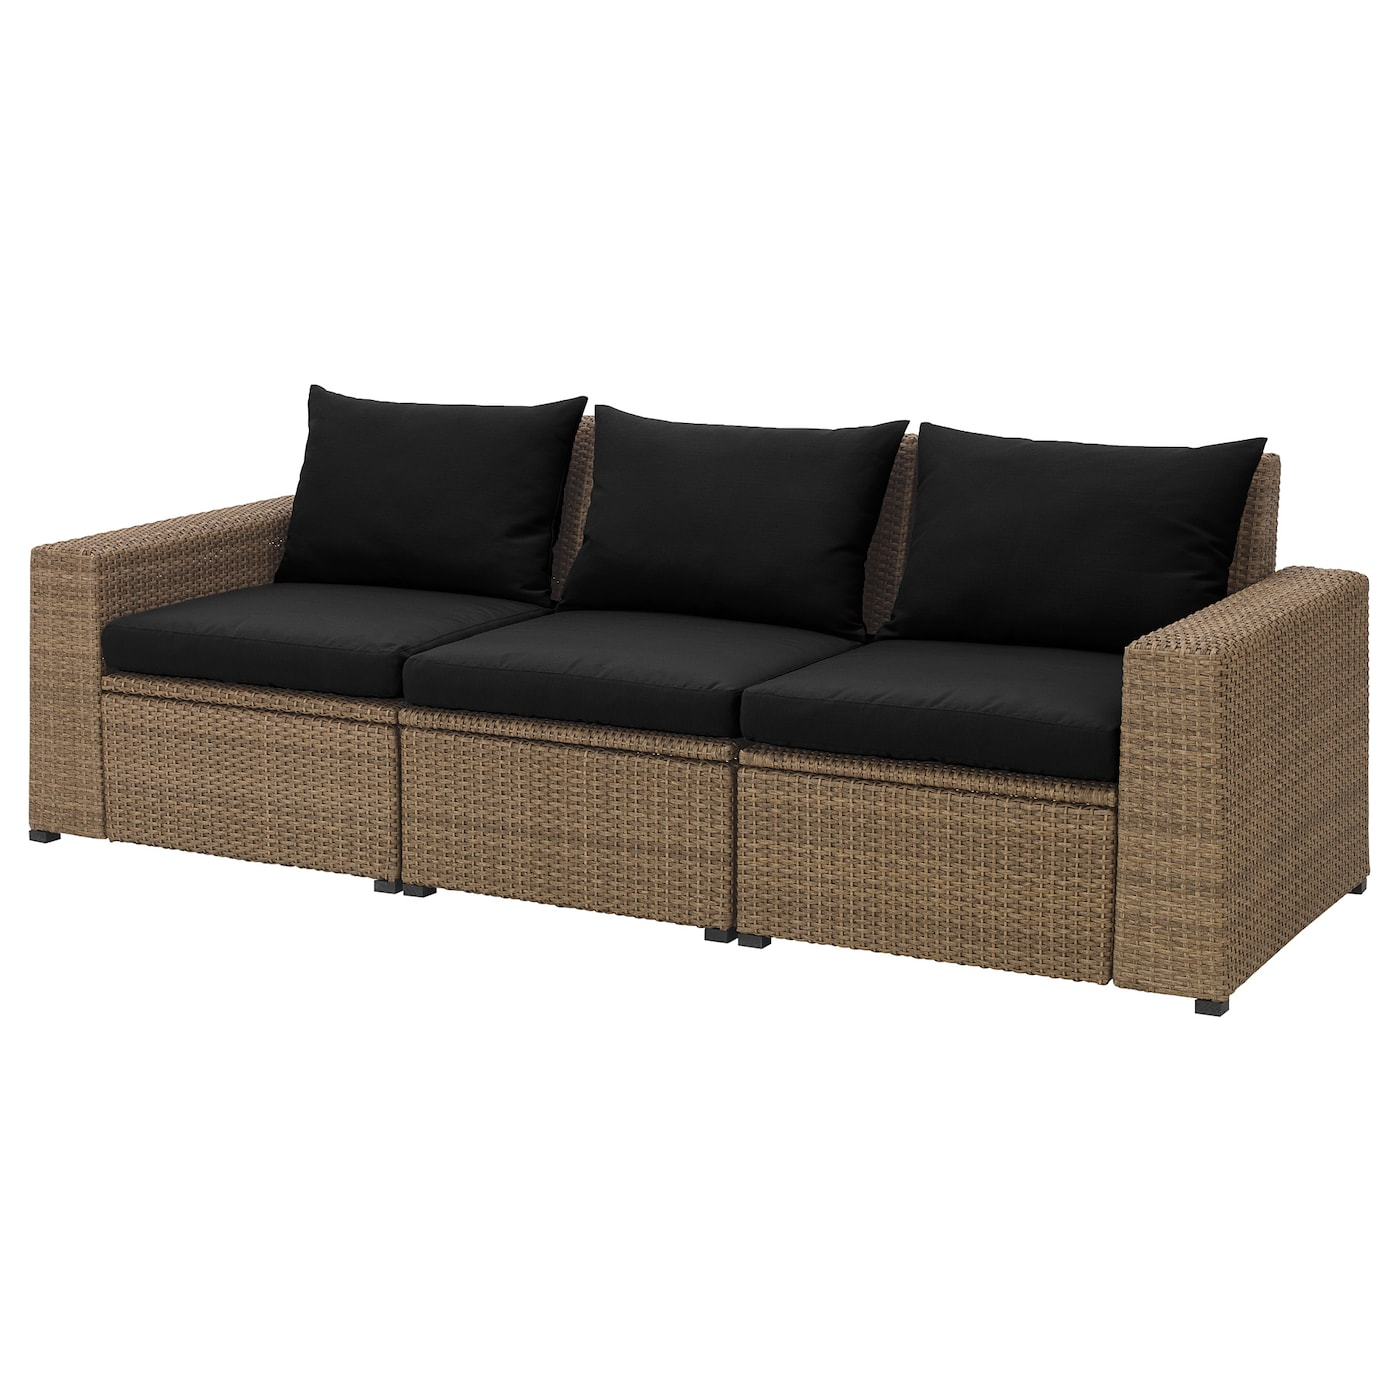 Ikea SollerÖn 3 Seat Sofa Outdoor Practical Storage E Under The